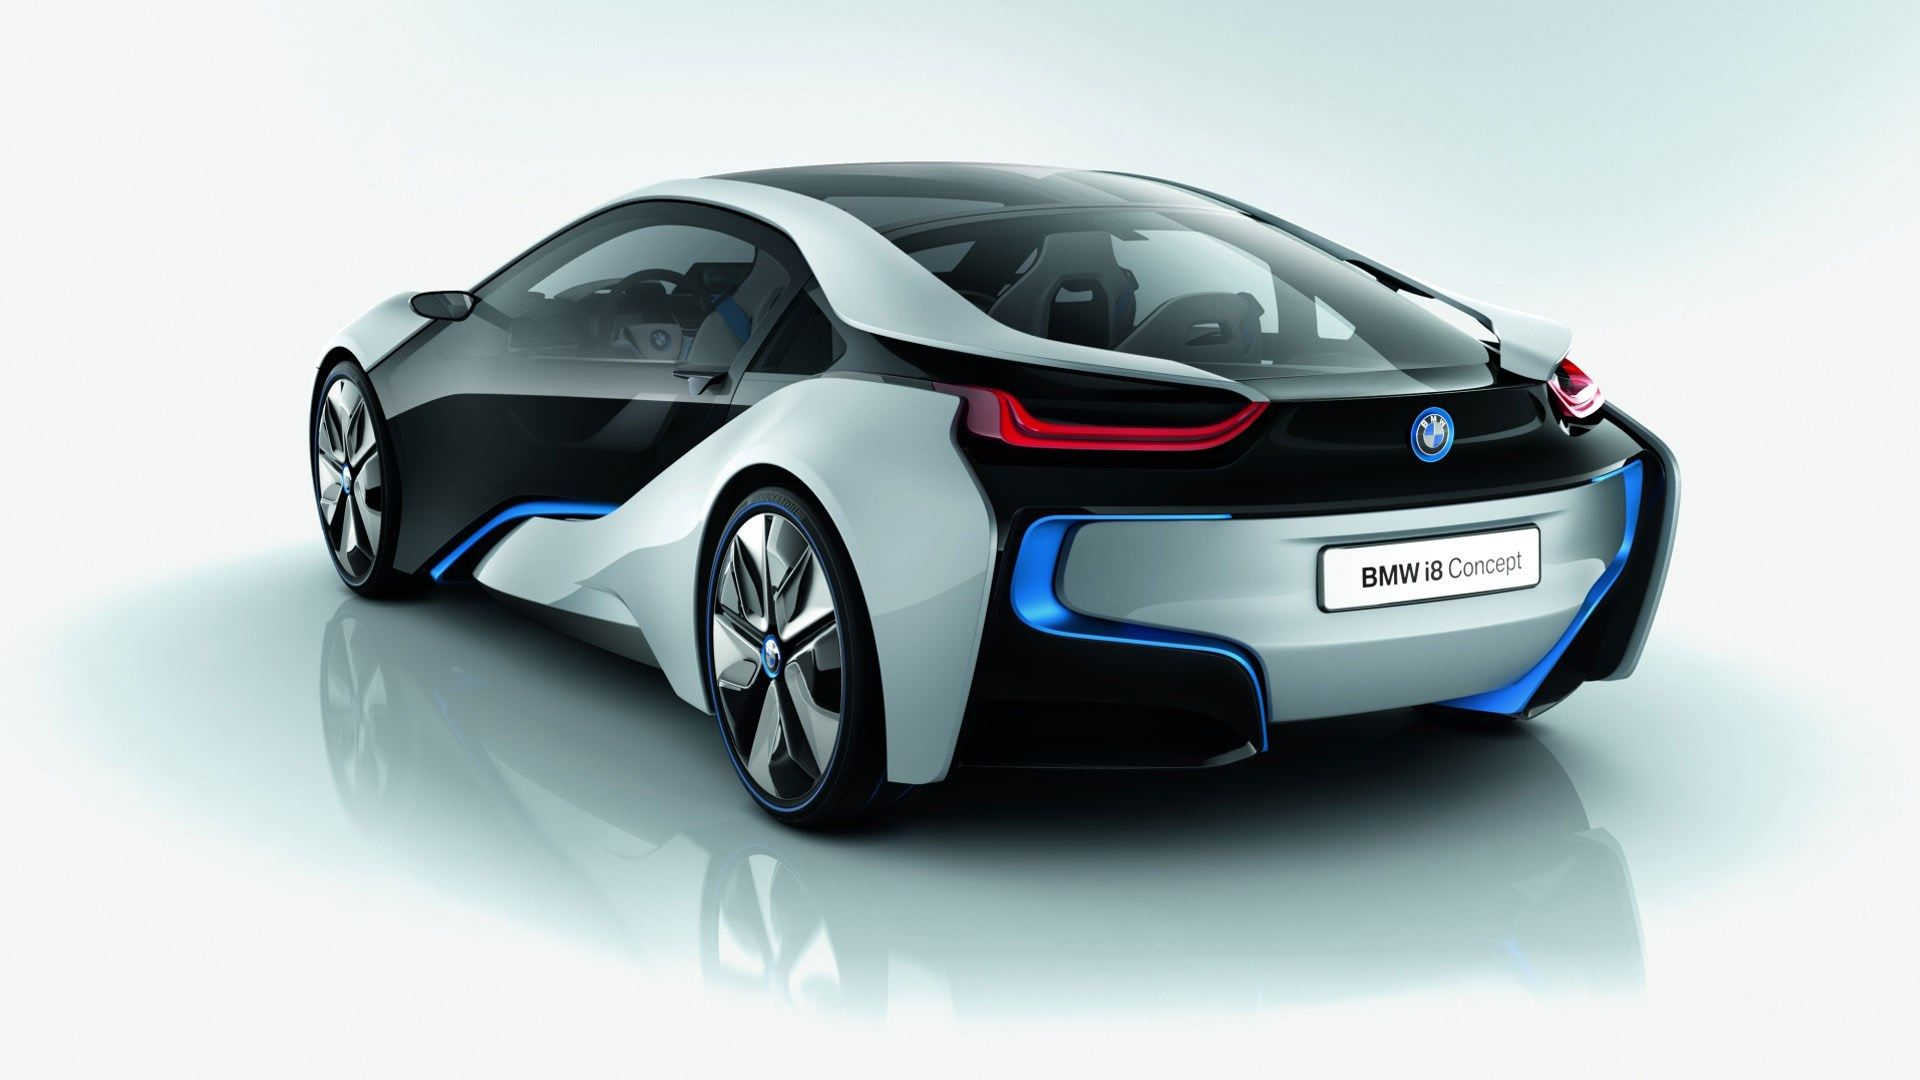 Bmw I8 Computer Backgrounds Wallpaper By Ethelyn Backer 2017 03 08